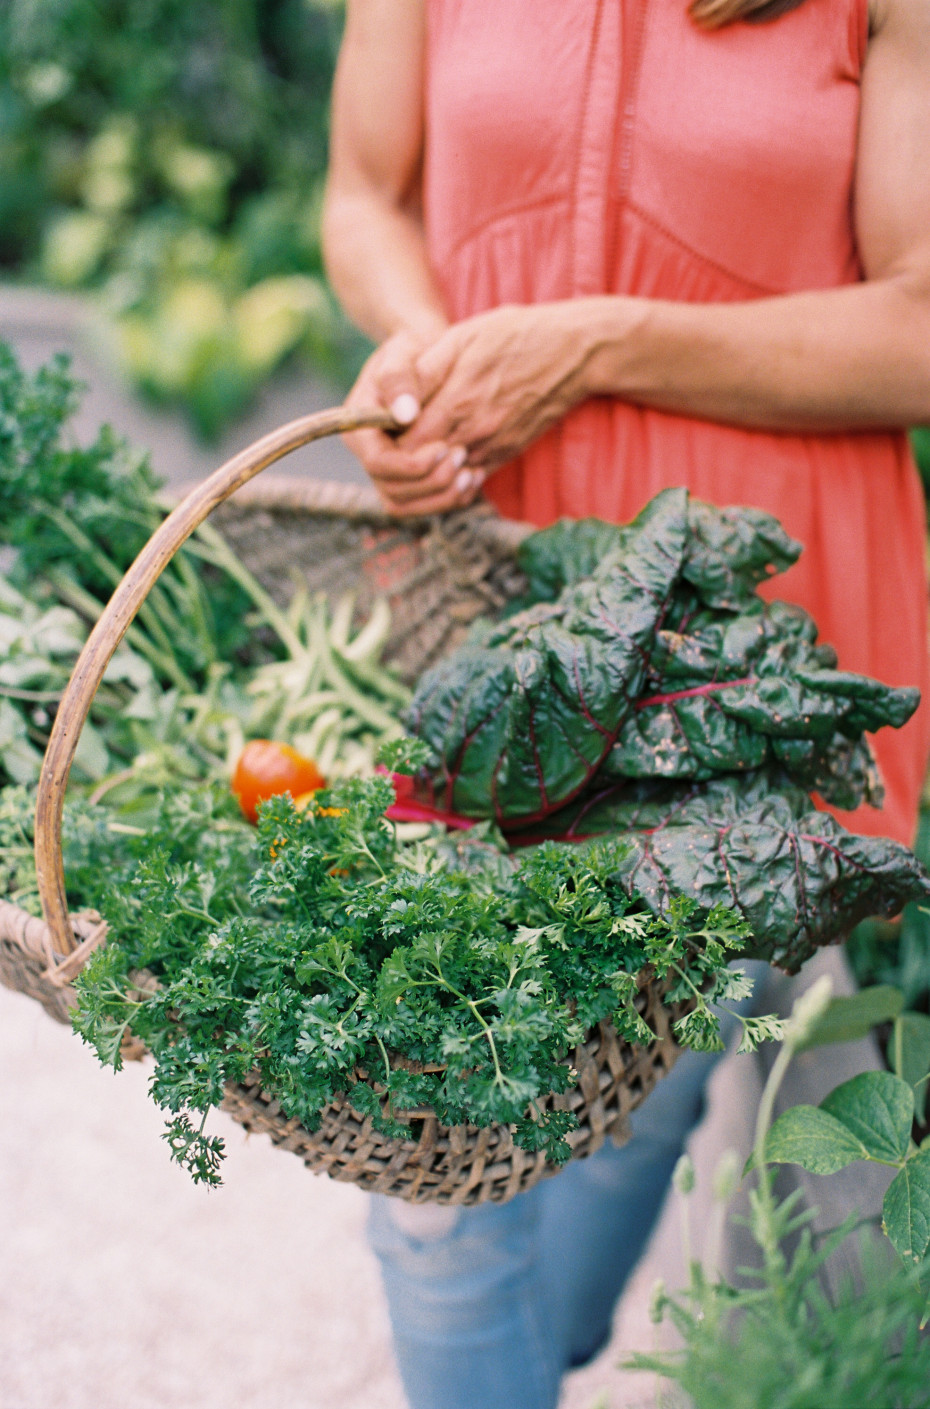 7 Reasons gardening is good for mental health on the Grow Your Self podcast with Nicole Burke of Gardenary